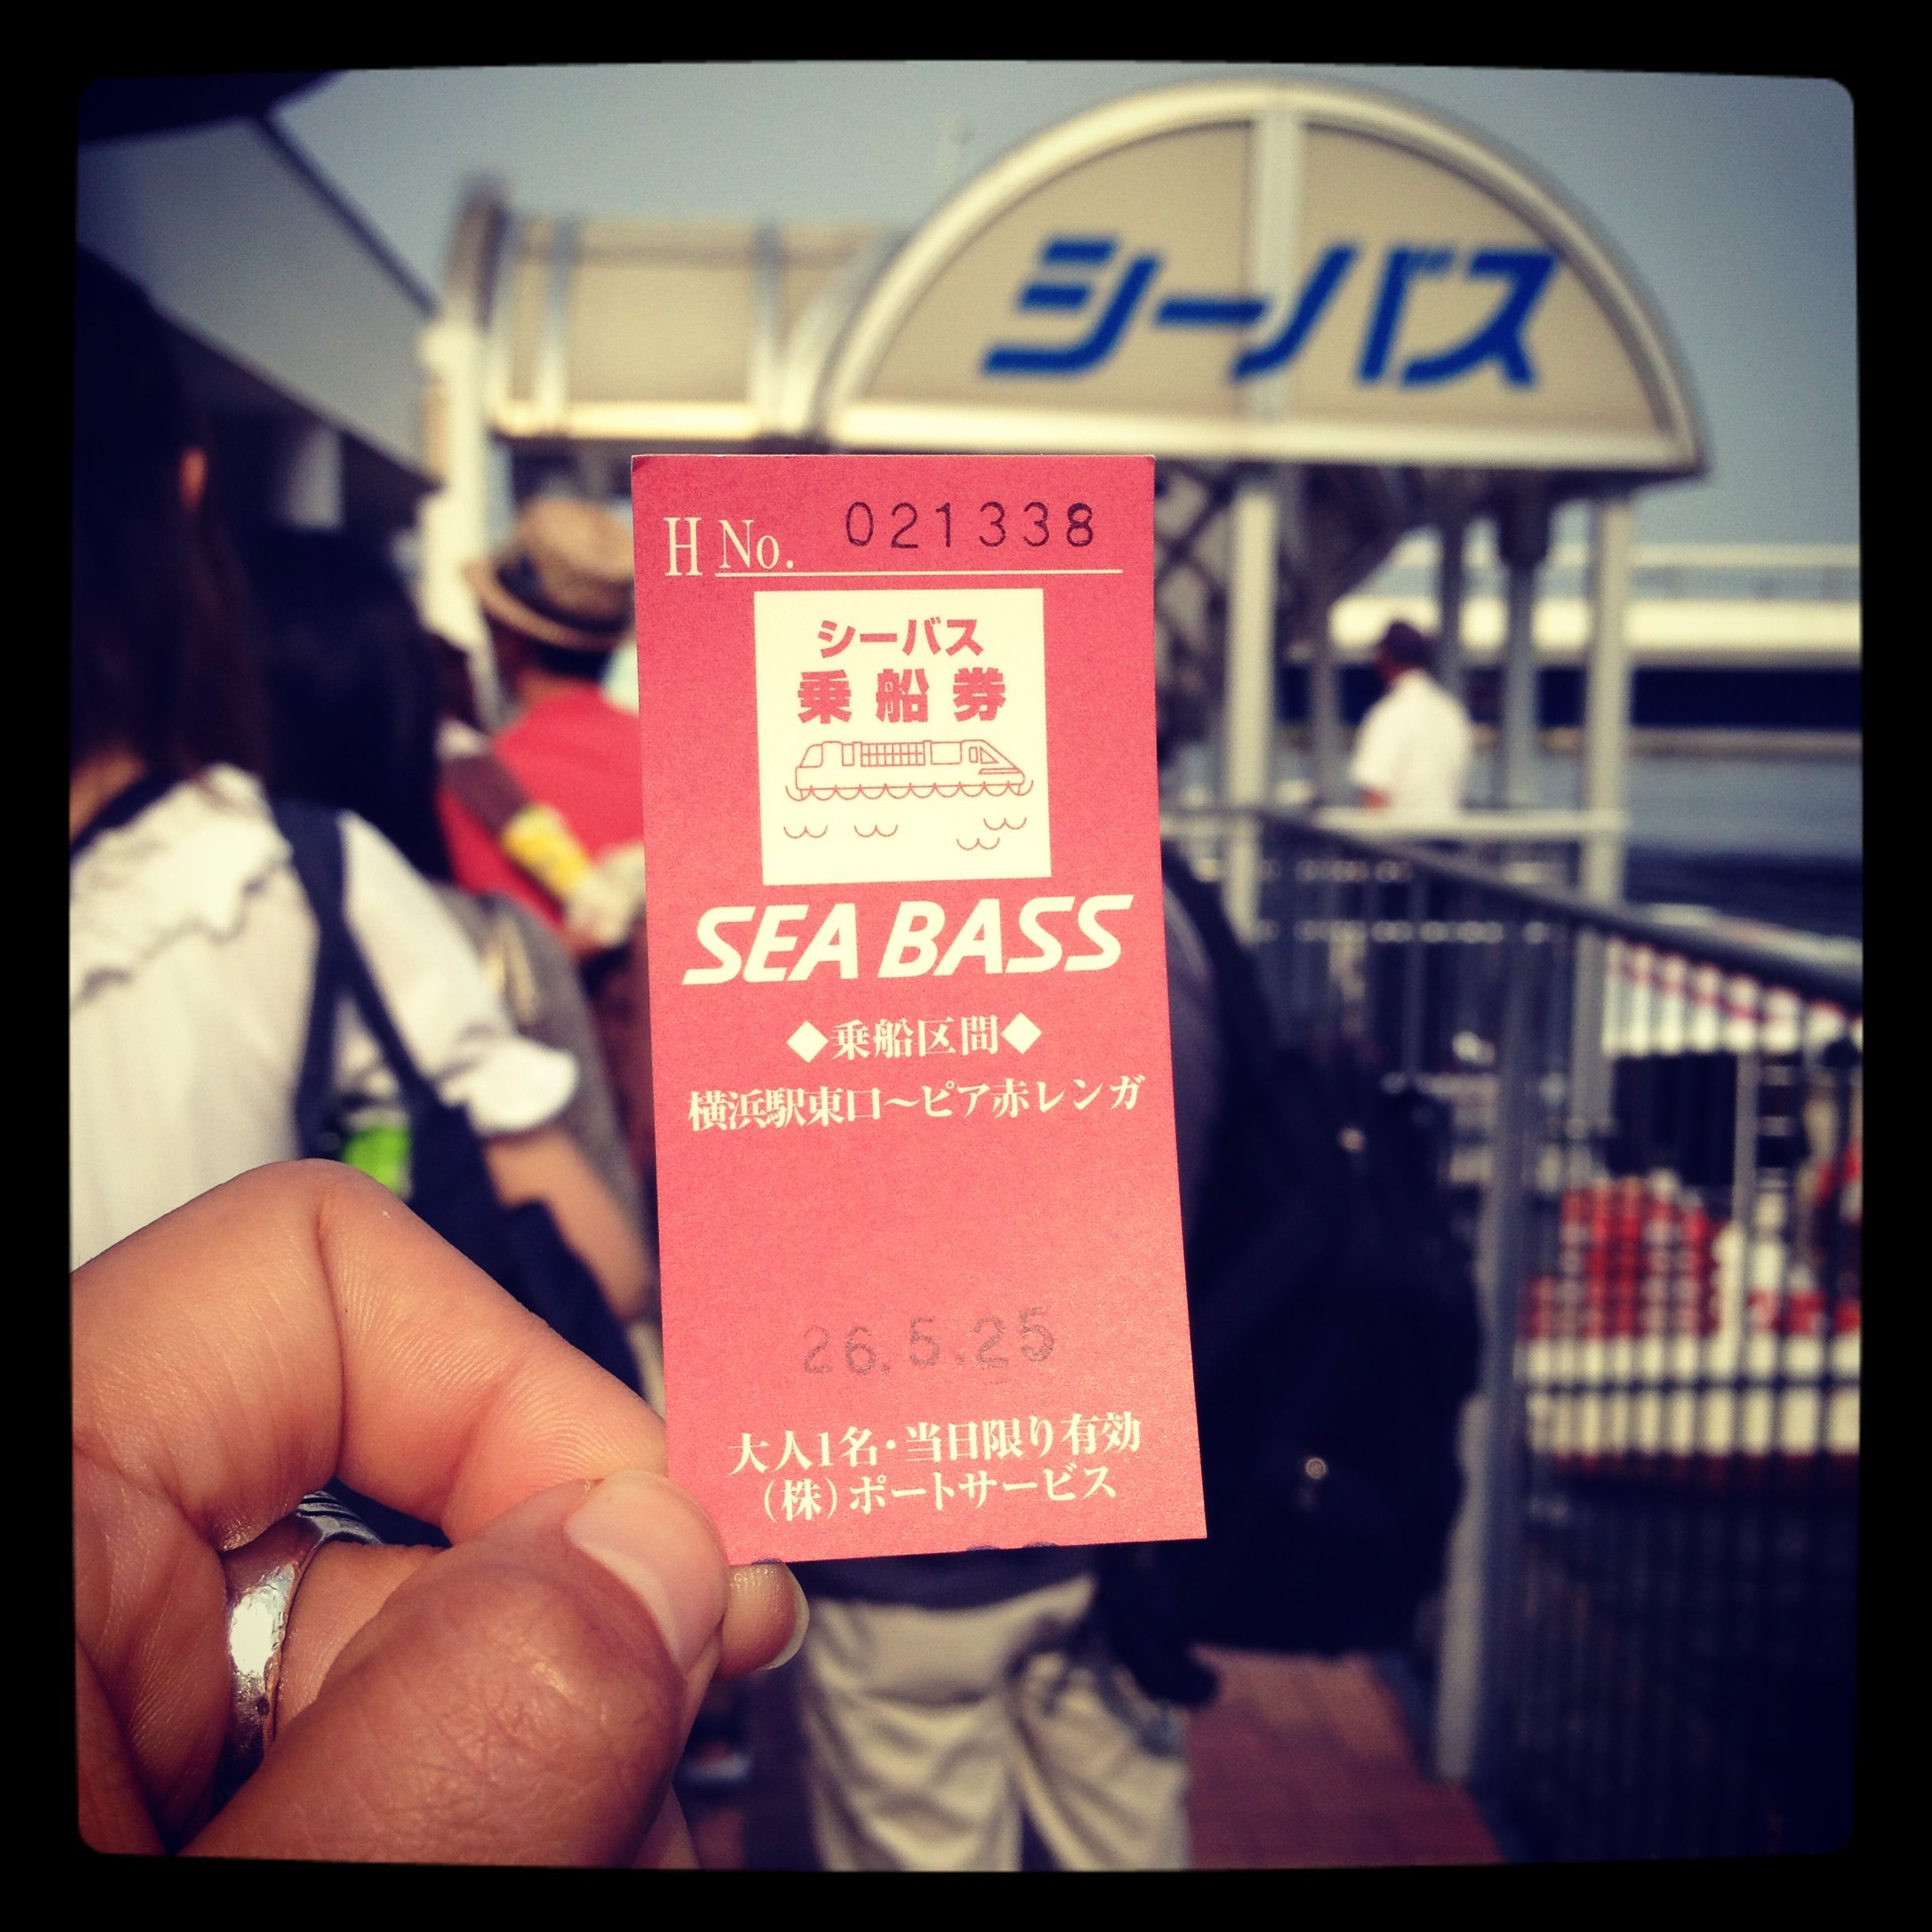 see bass